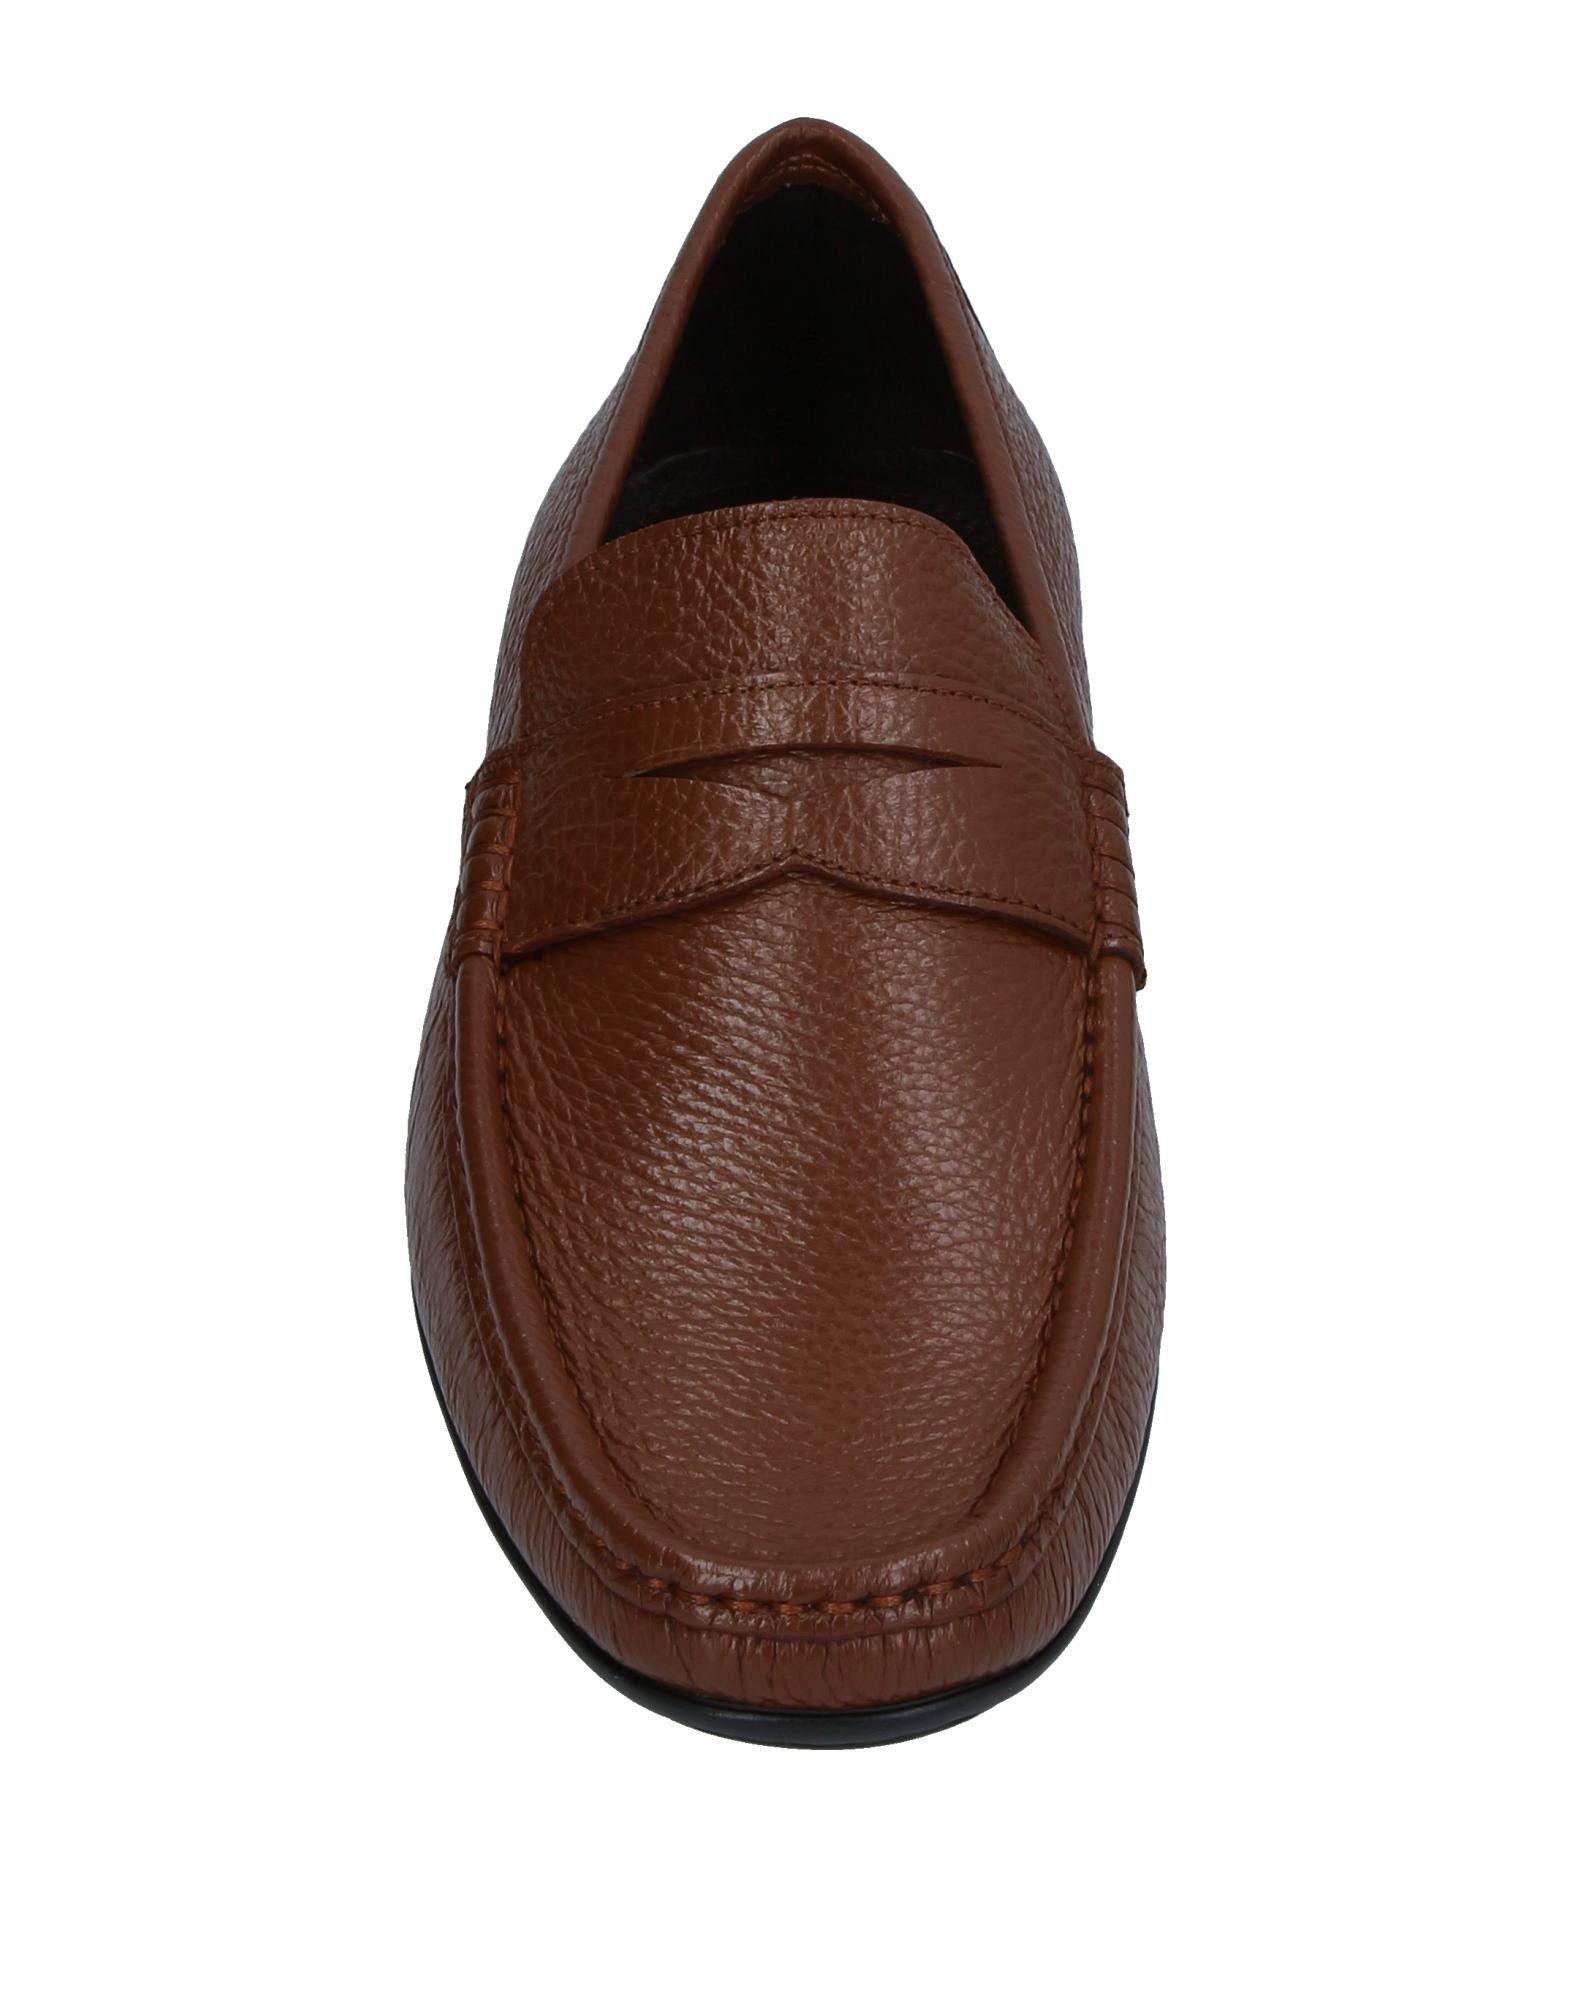 Bruno Magli Leather Loafer in Brown for Men